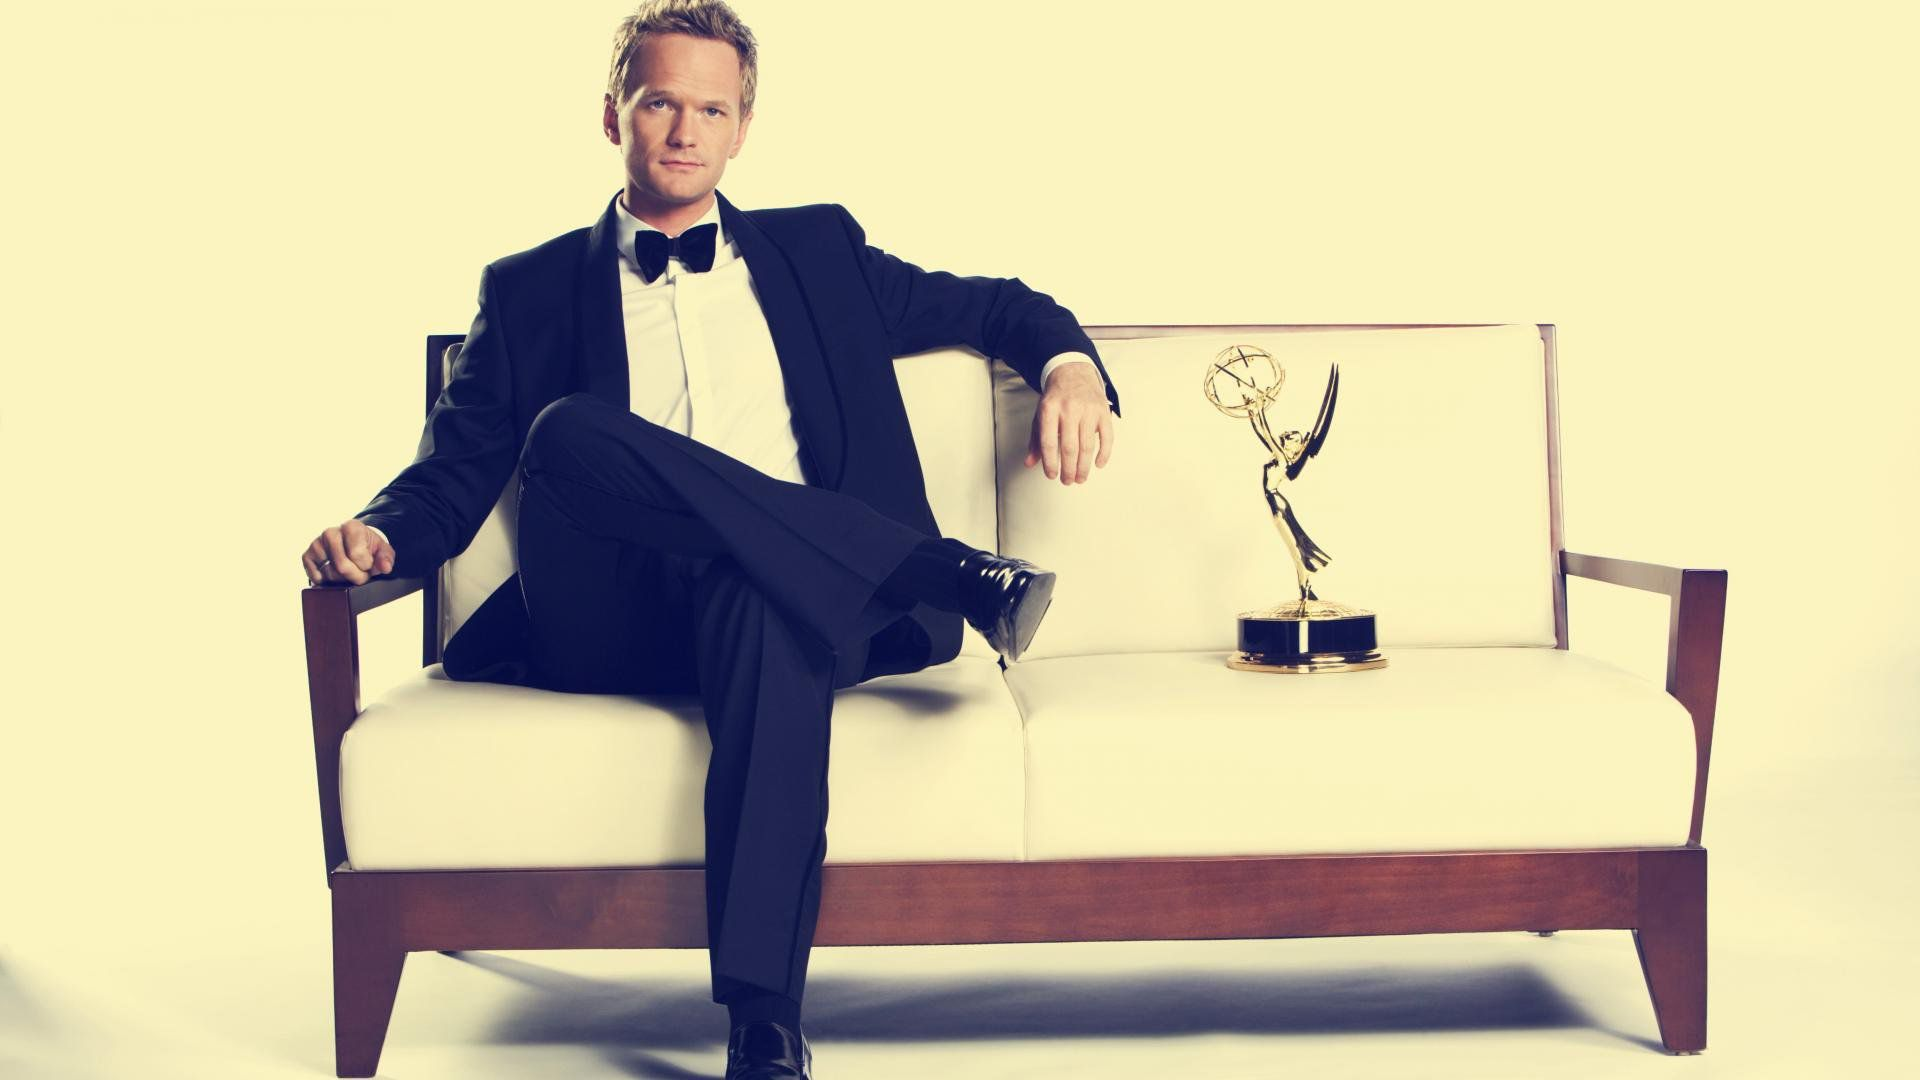 Barney Stinson Wallpaper Pack